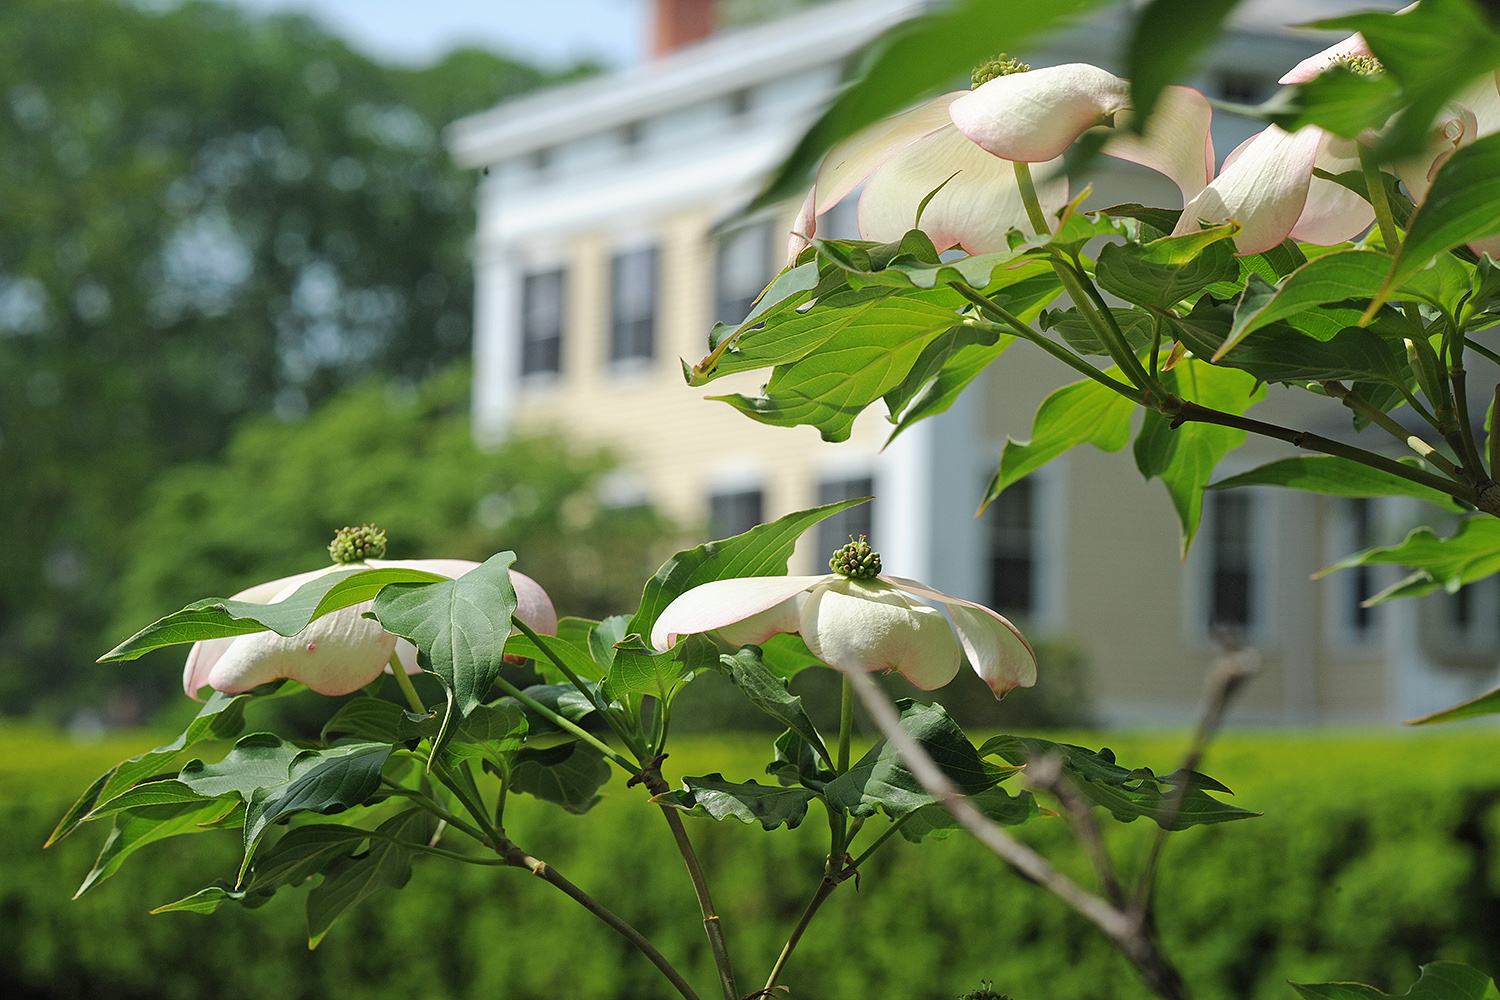 A dogwood tree blooms near the Center for the Americas.